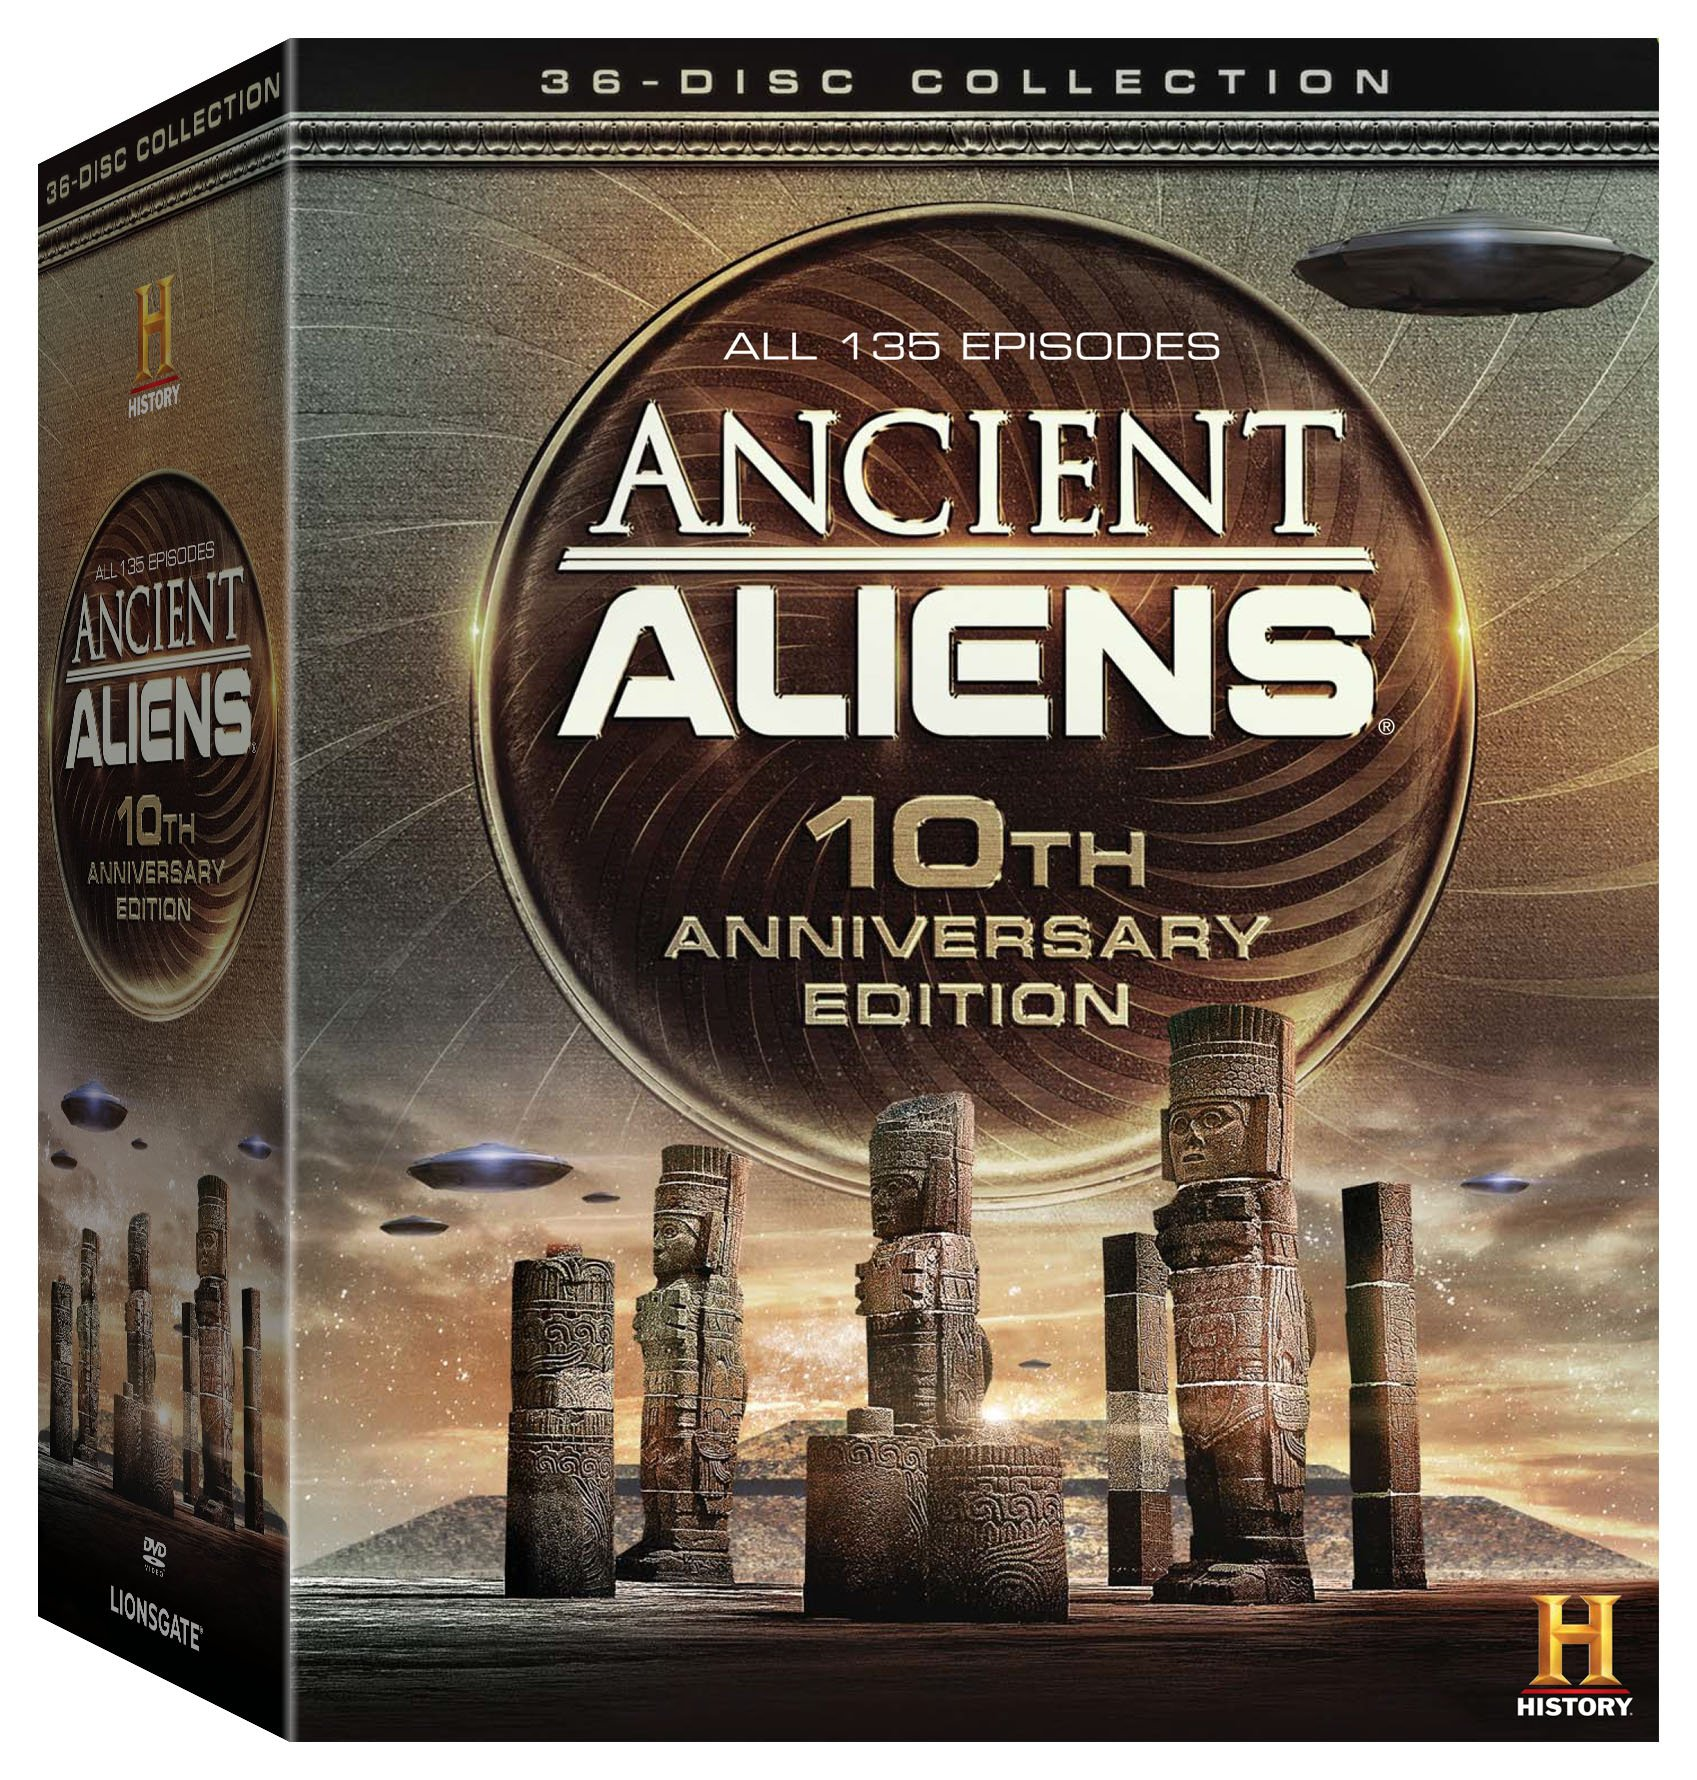 DVD : Ancient Aliens: 10th Anniversary Edition (Boxed Set, Gift Set, Anniversary Edition, Full Frame, Widescreen)